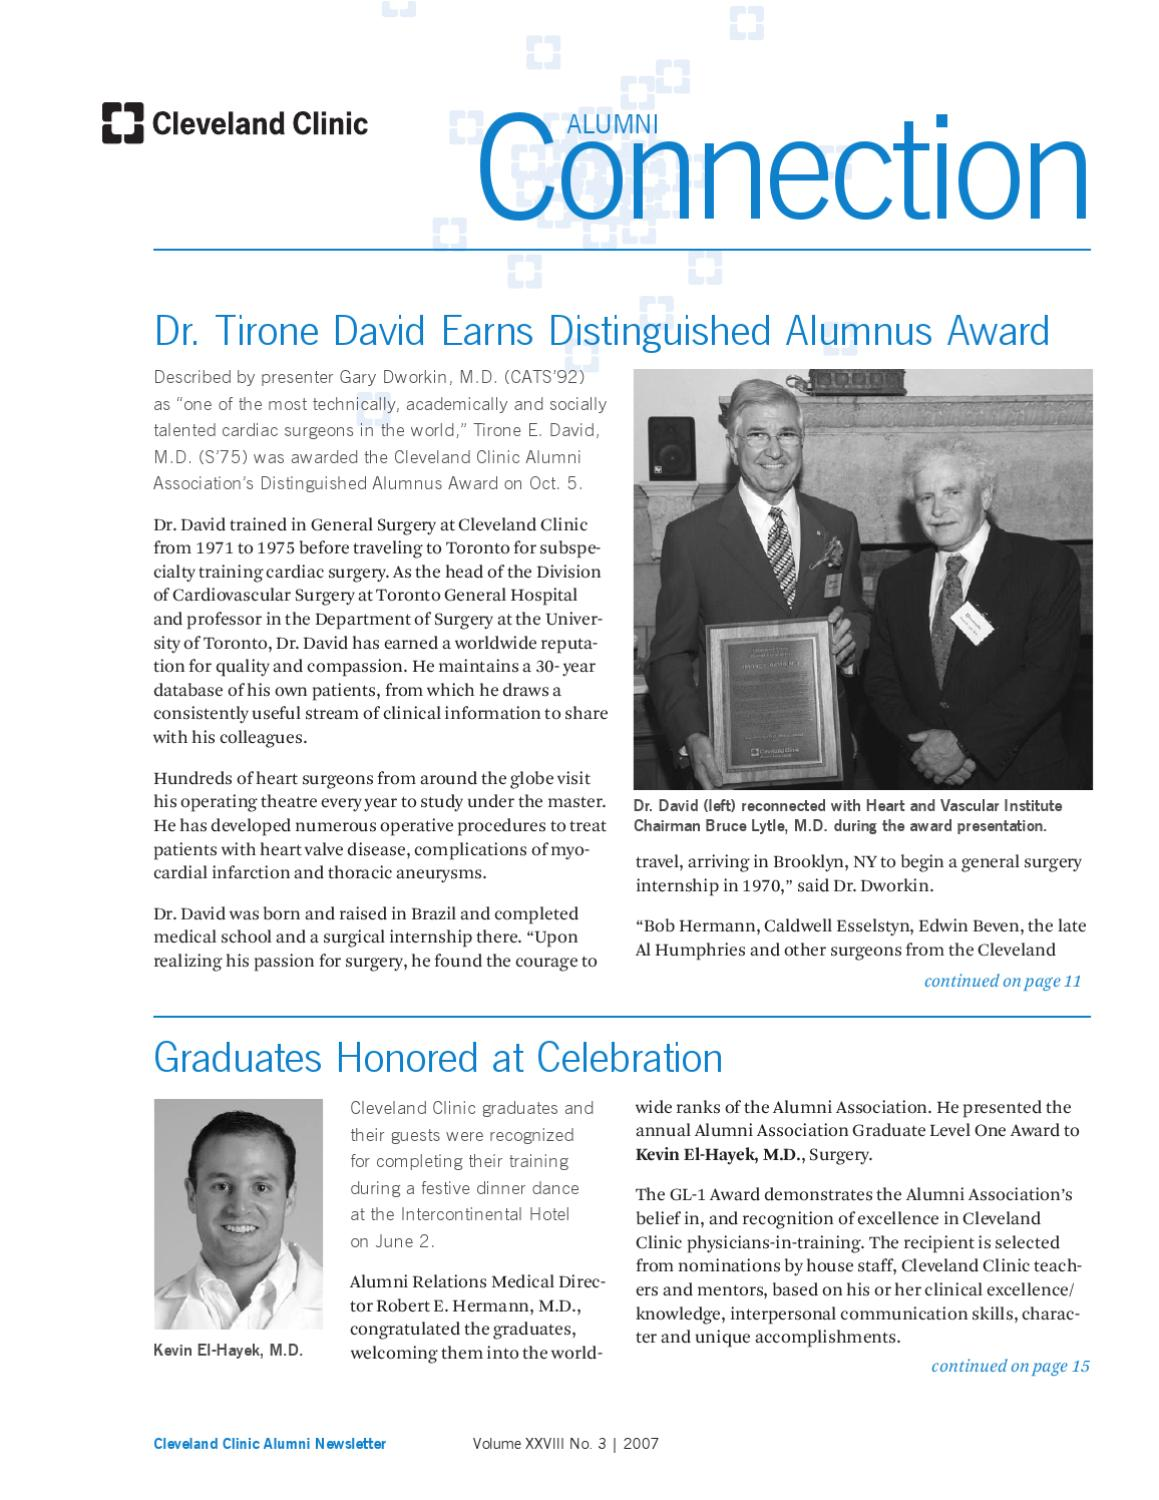 Cleveland Clinic Alumni Connection - Vol XXVIII No  3 - 2007